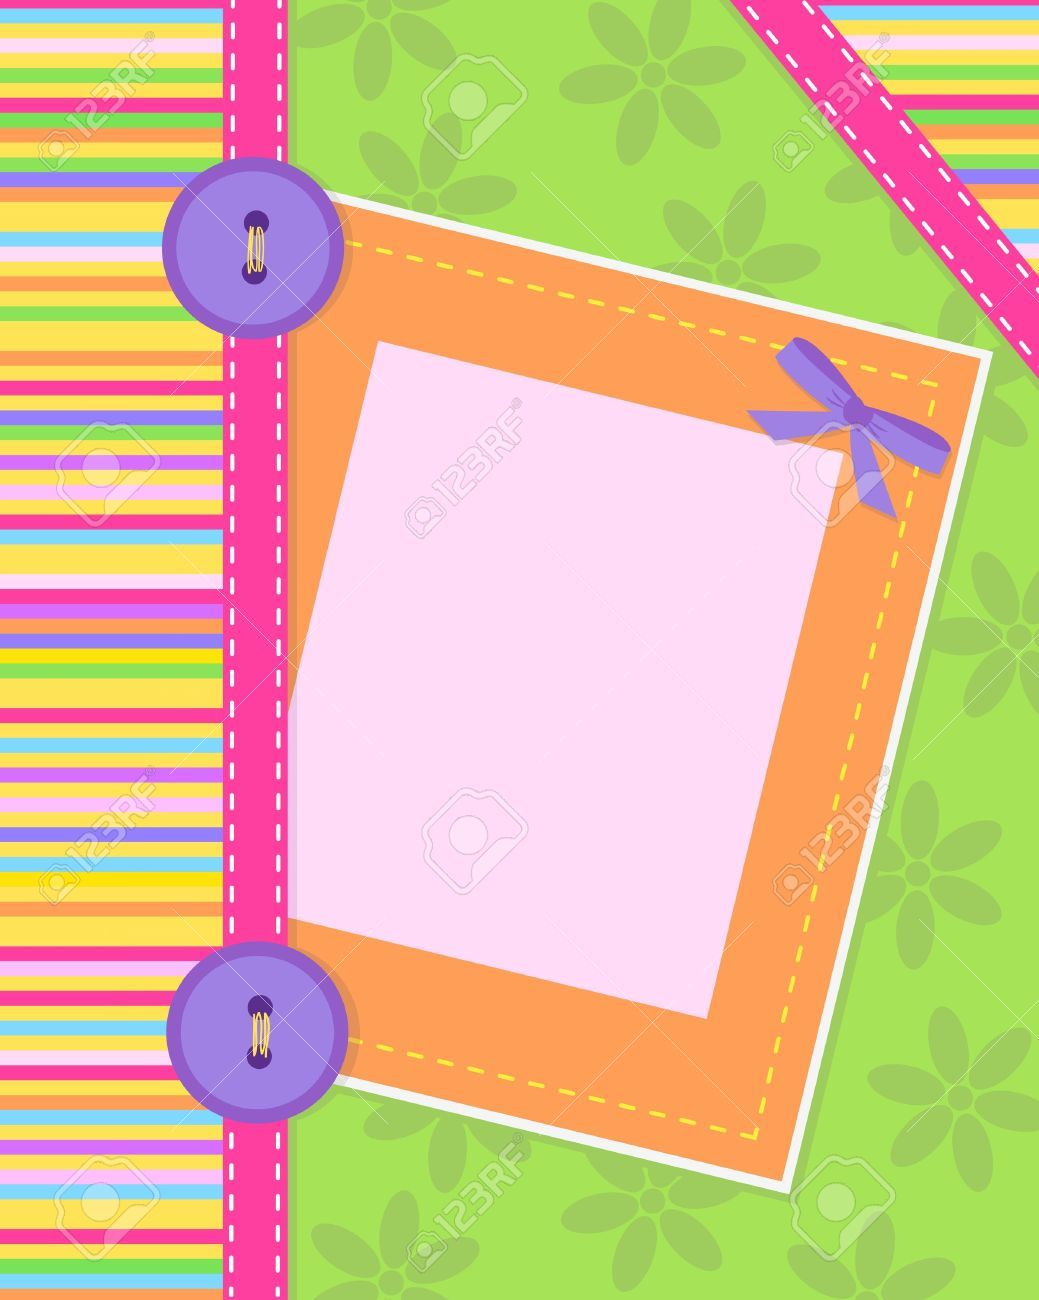 Scrapbook Cover Ideas : Simple scrapbook cover designs imgkid the